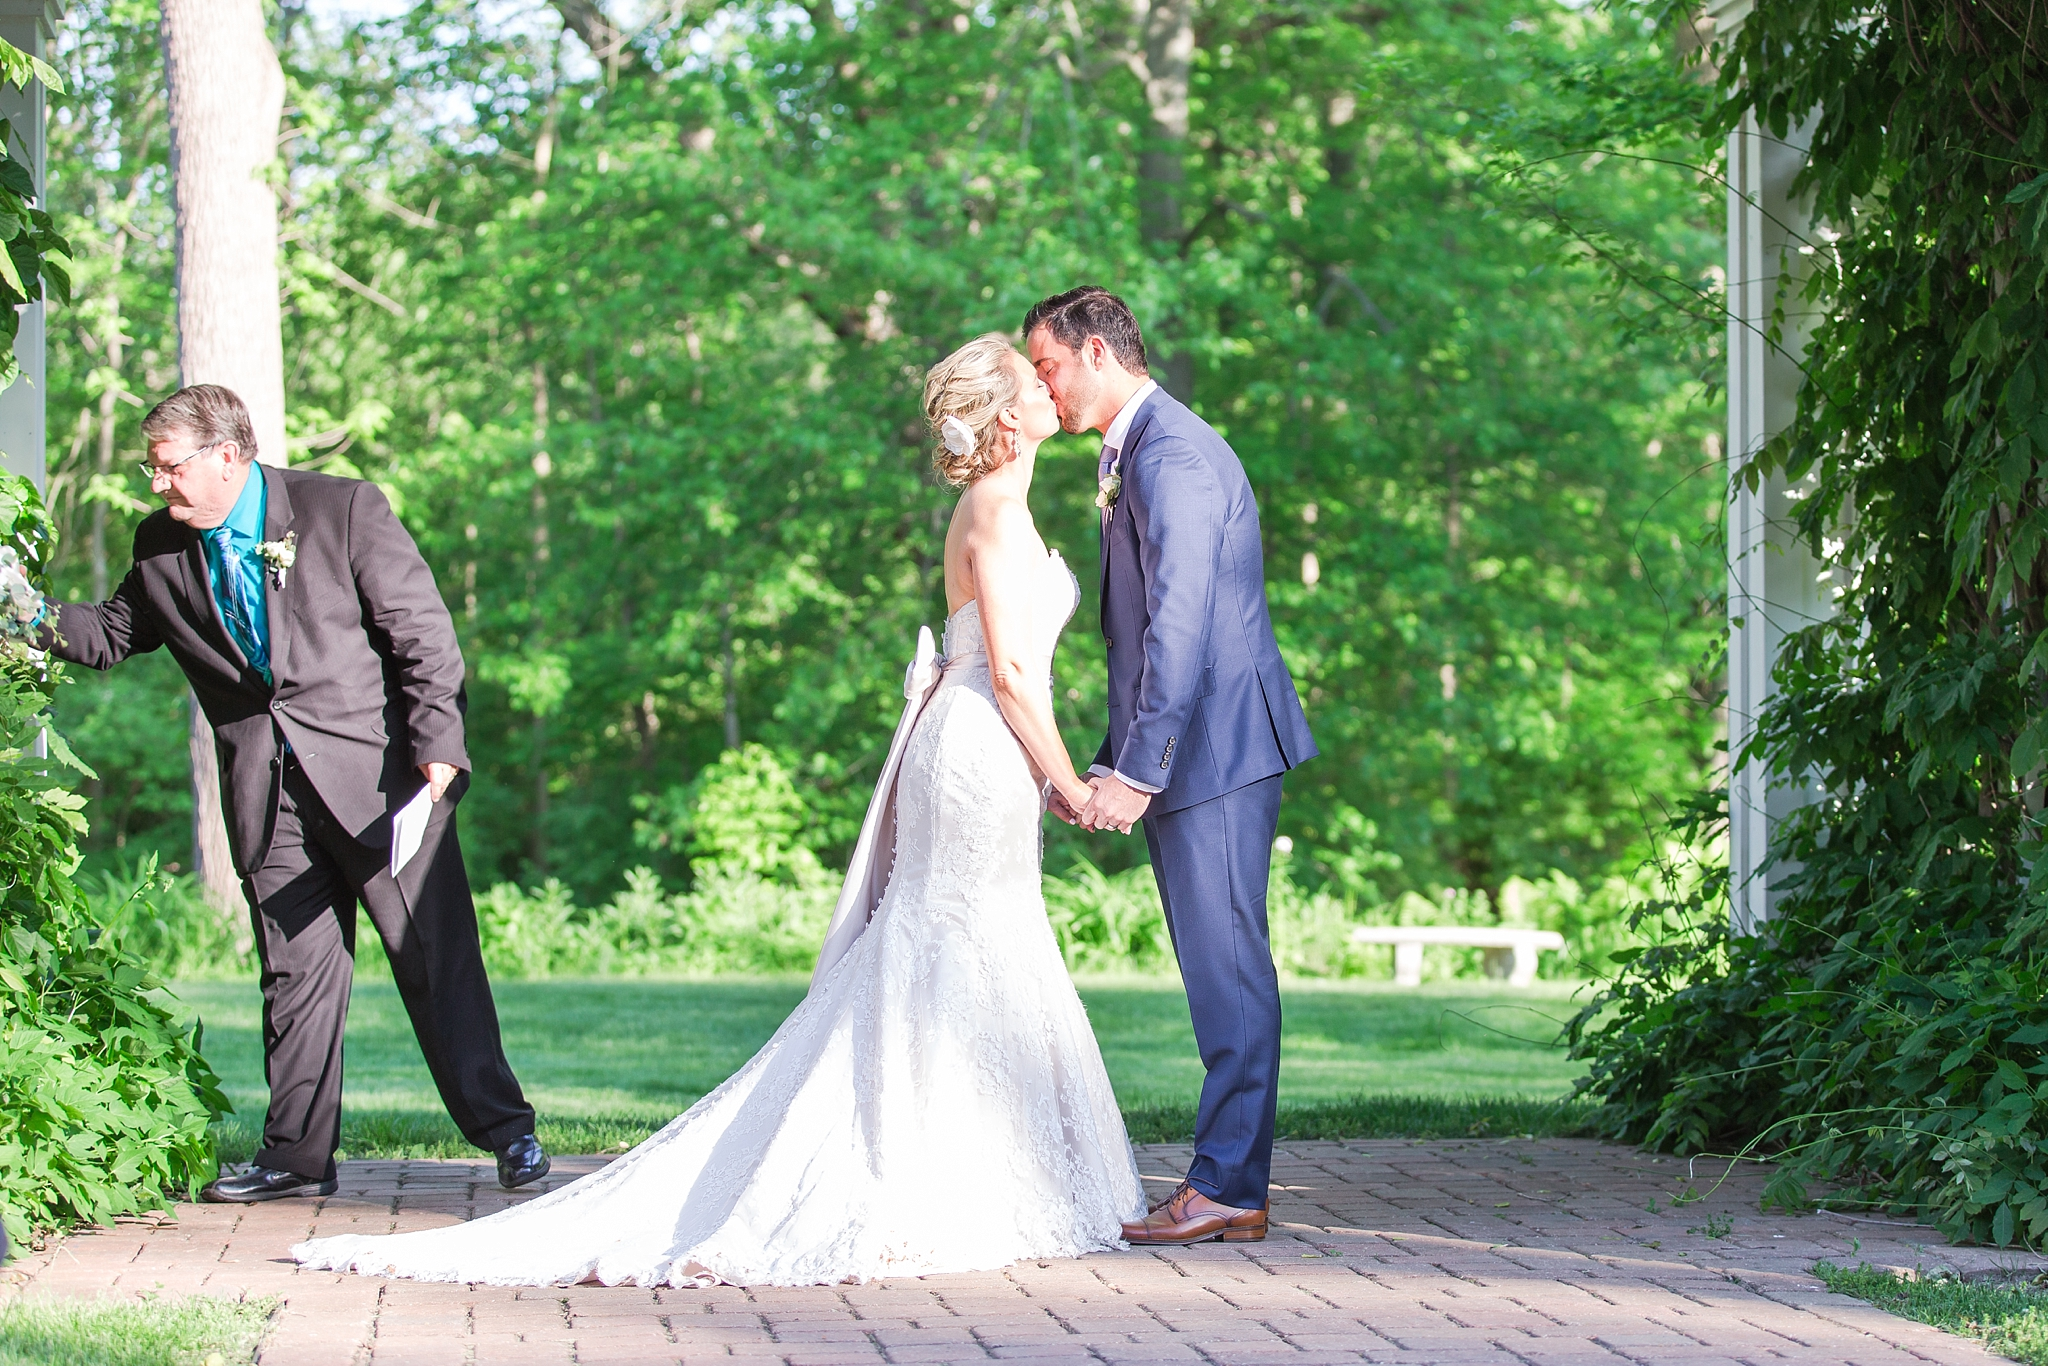 fun-candid-laid-back-wedding-photos-at-wellers-carriage-house-in-saline-michigan-and-at-the-eagle-crest-golf-resort-by-courtney-carolyn-photography_0071.jpg